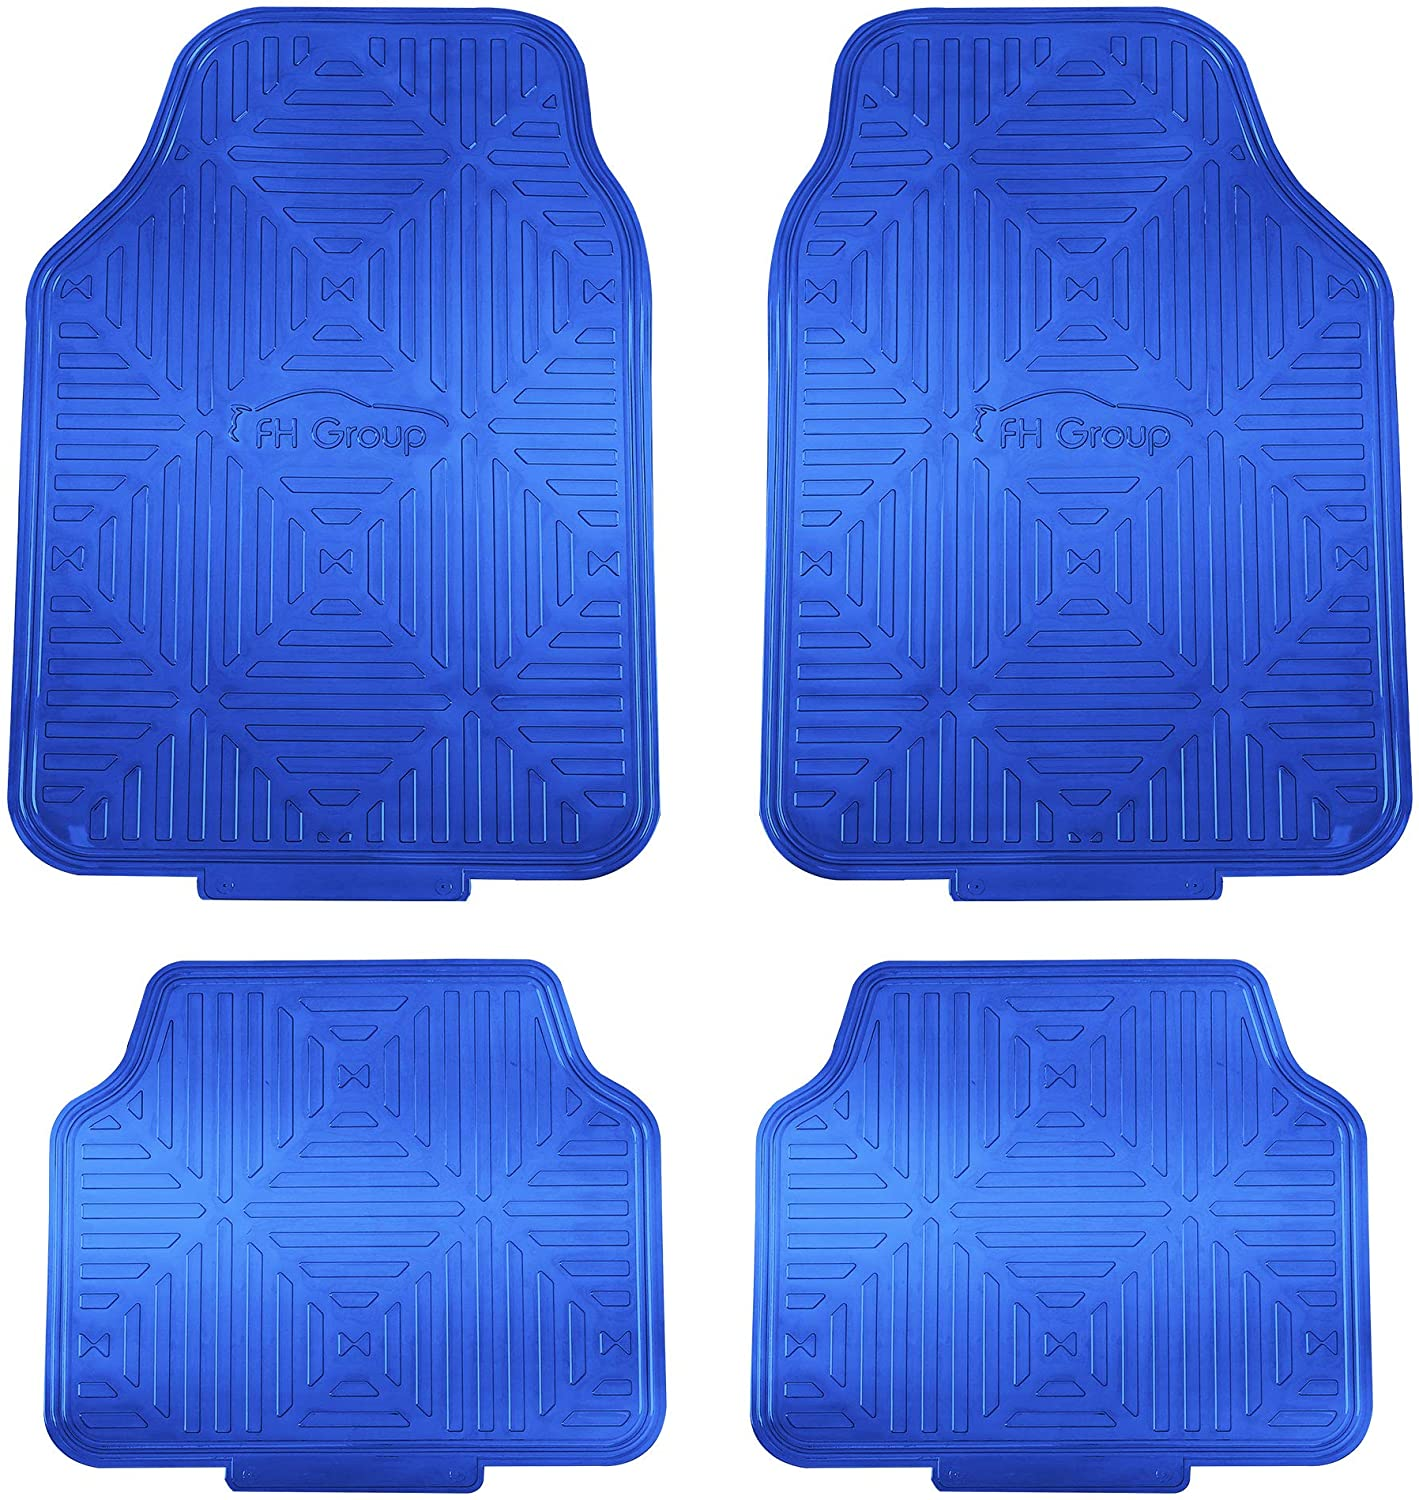 FH Group F14410BLUE Metallic Finish Floor Backing Rubber Mats Max 82% OFF B New product type